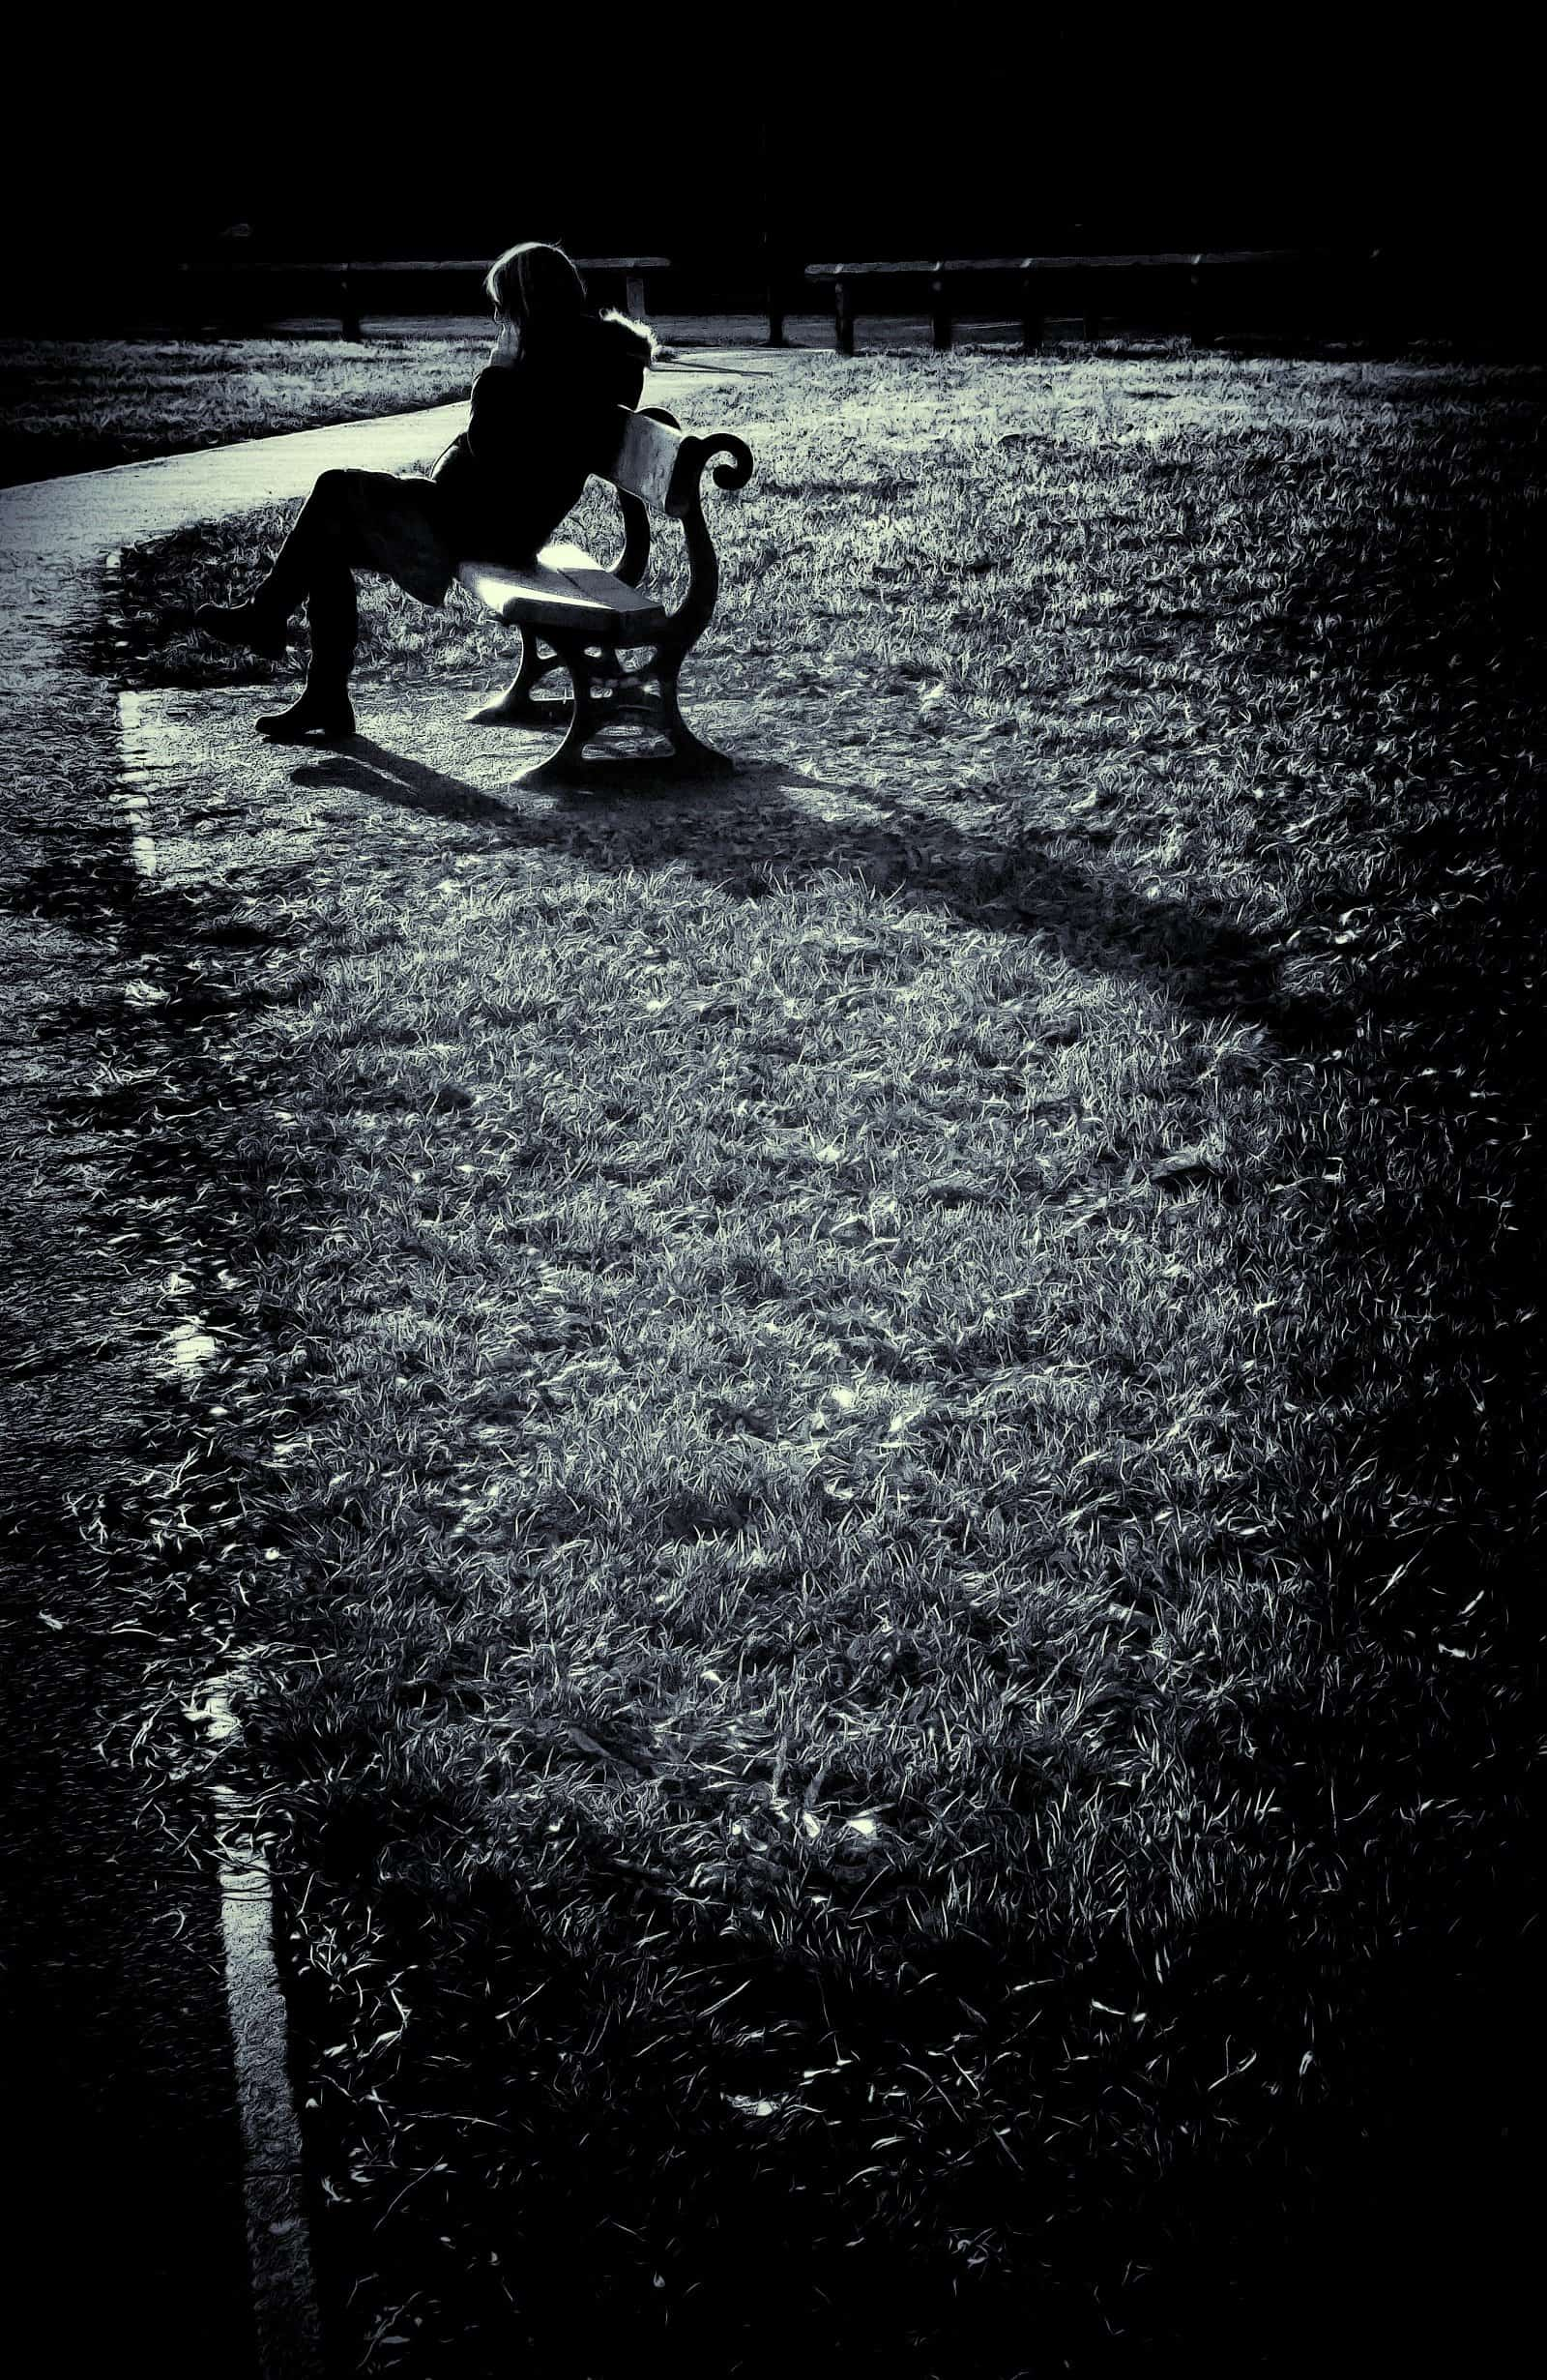 Someone sitting alone on a park bench